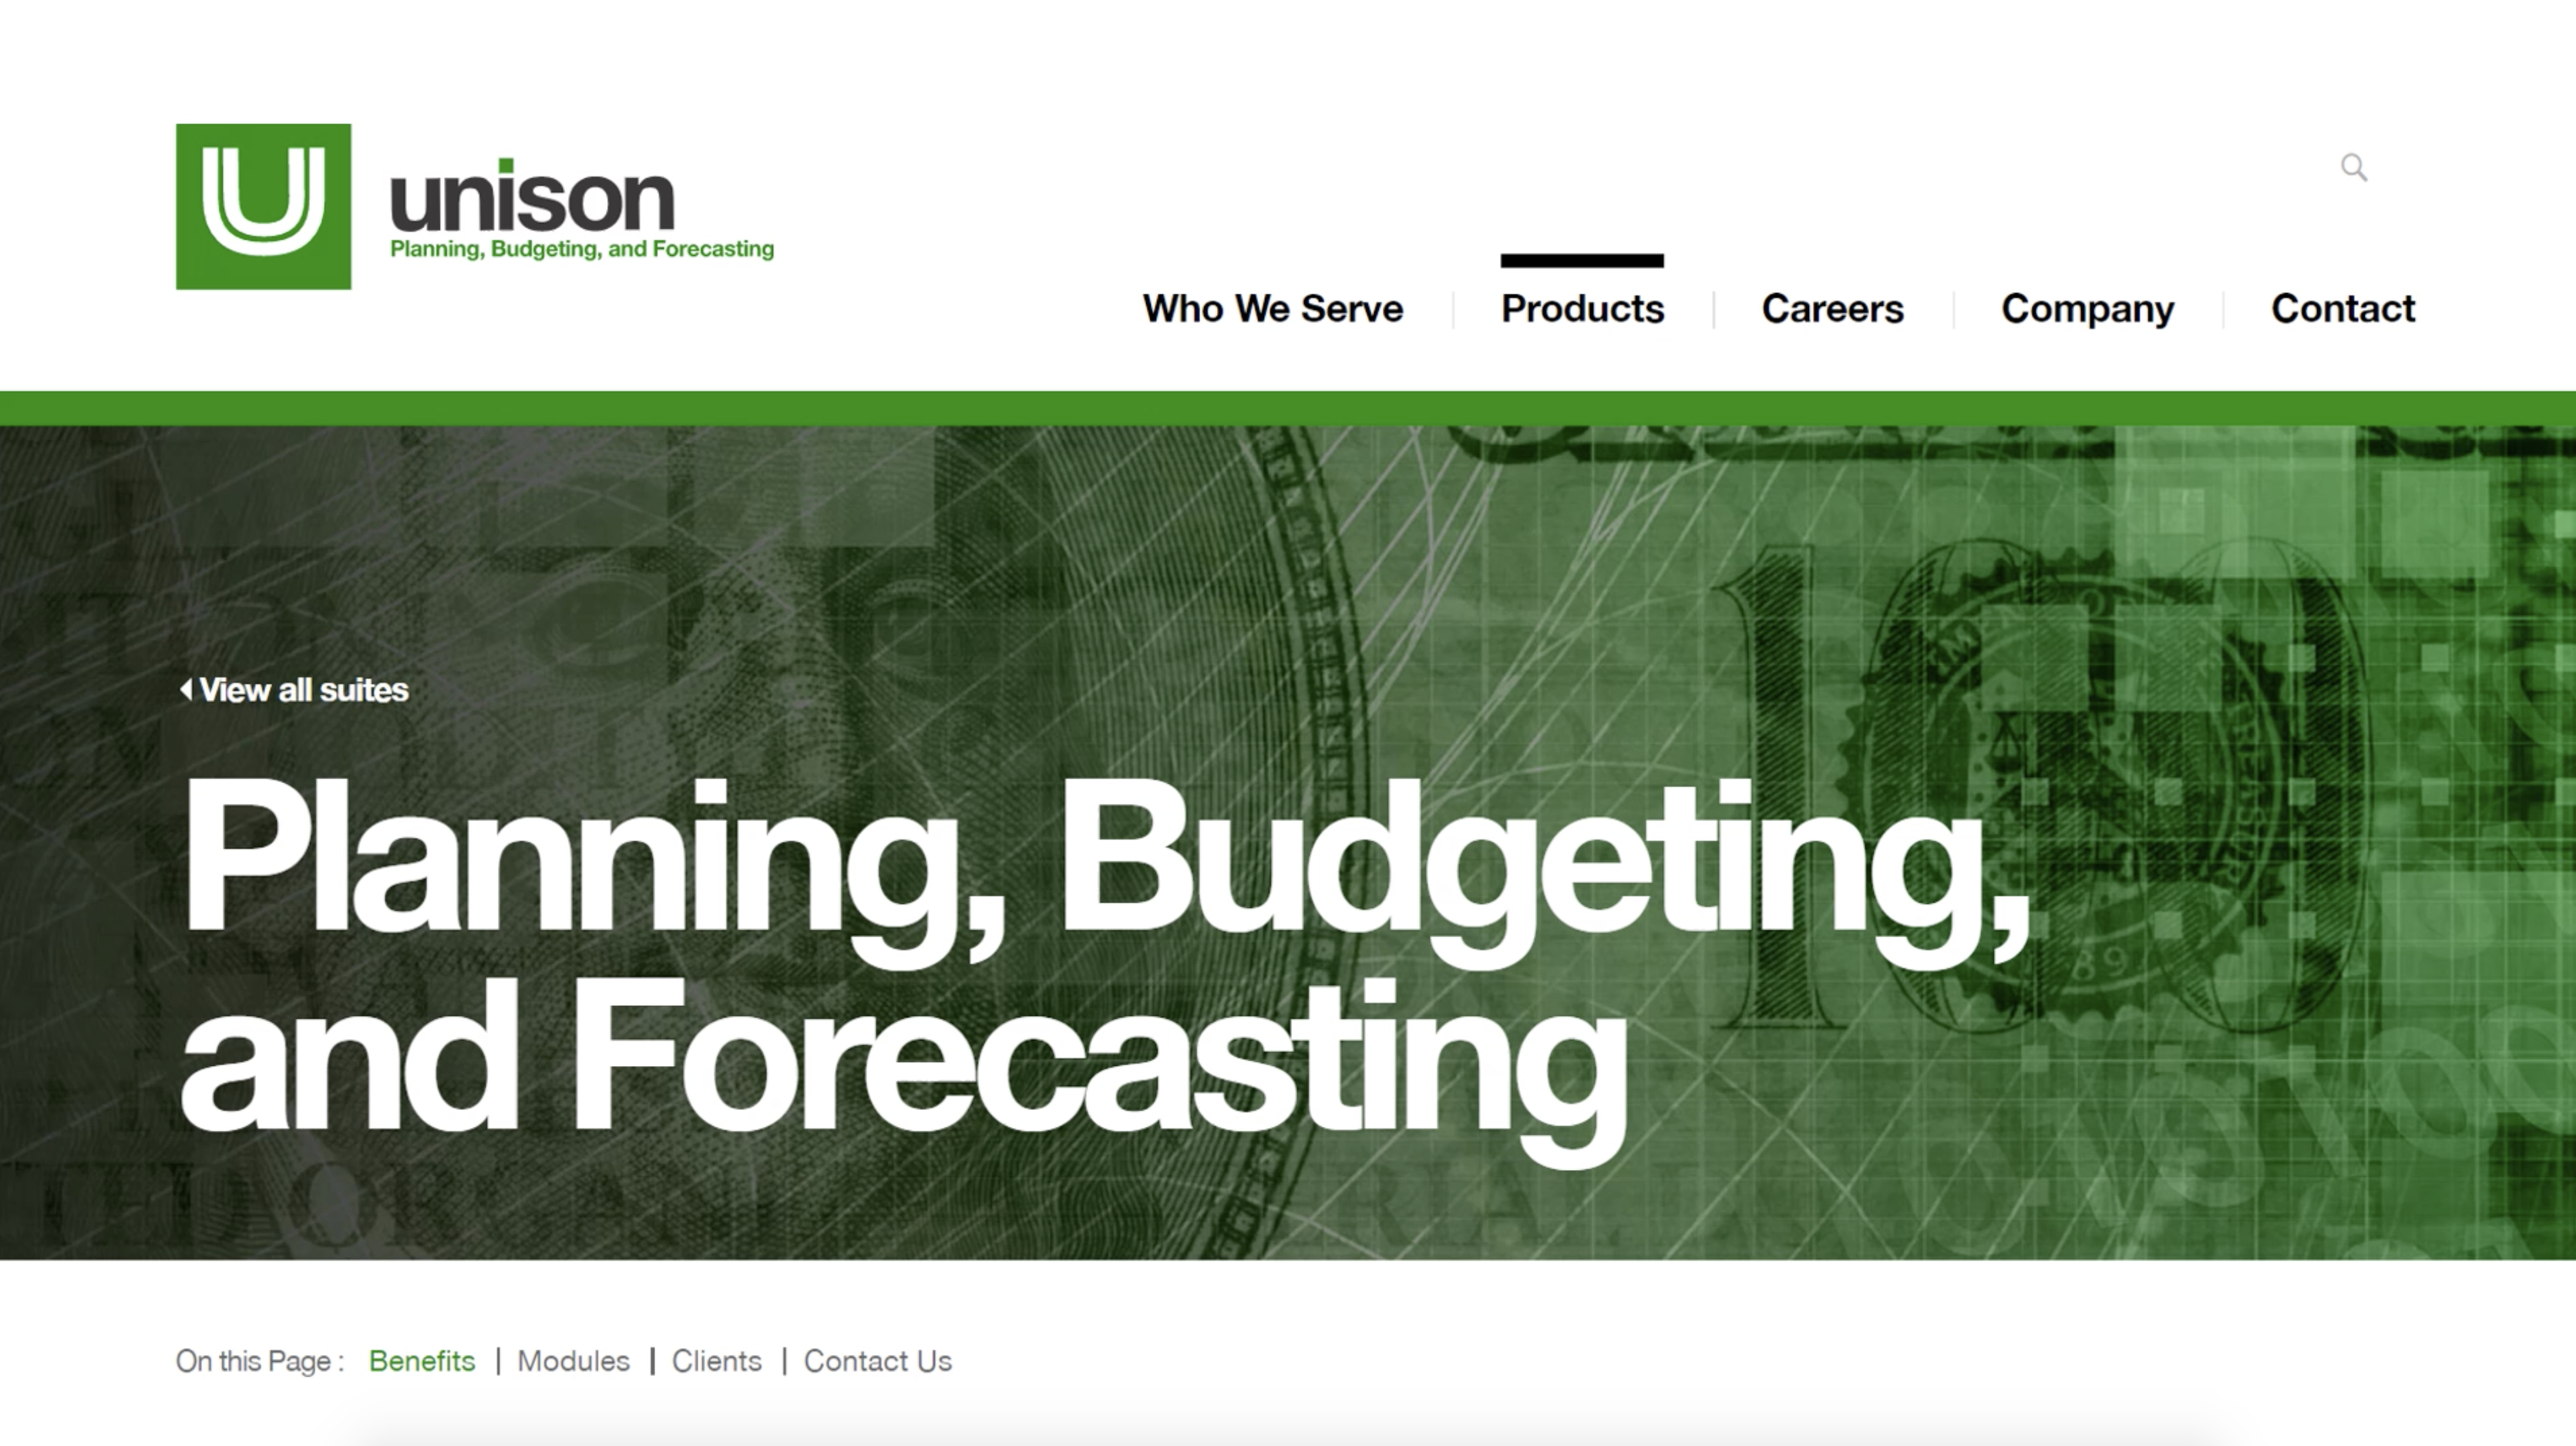 Planning, Budgeting, and Forecasting